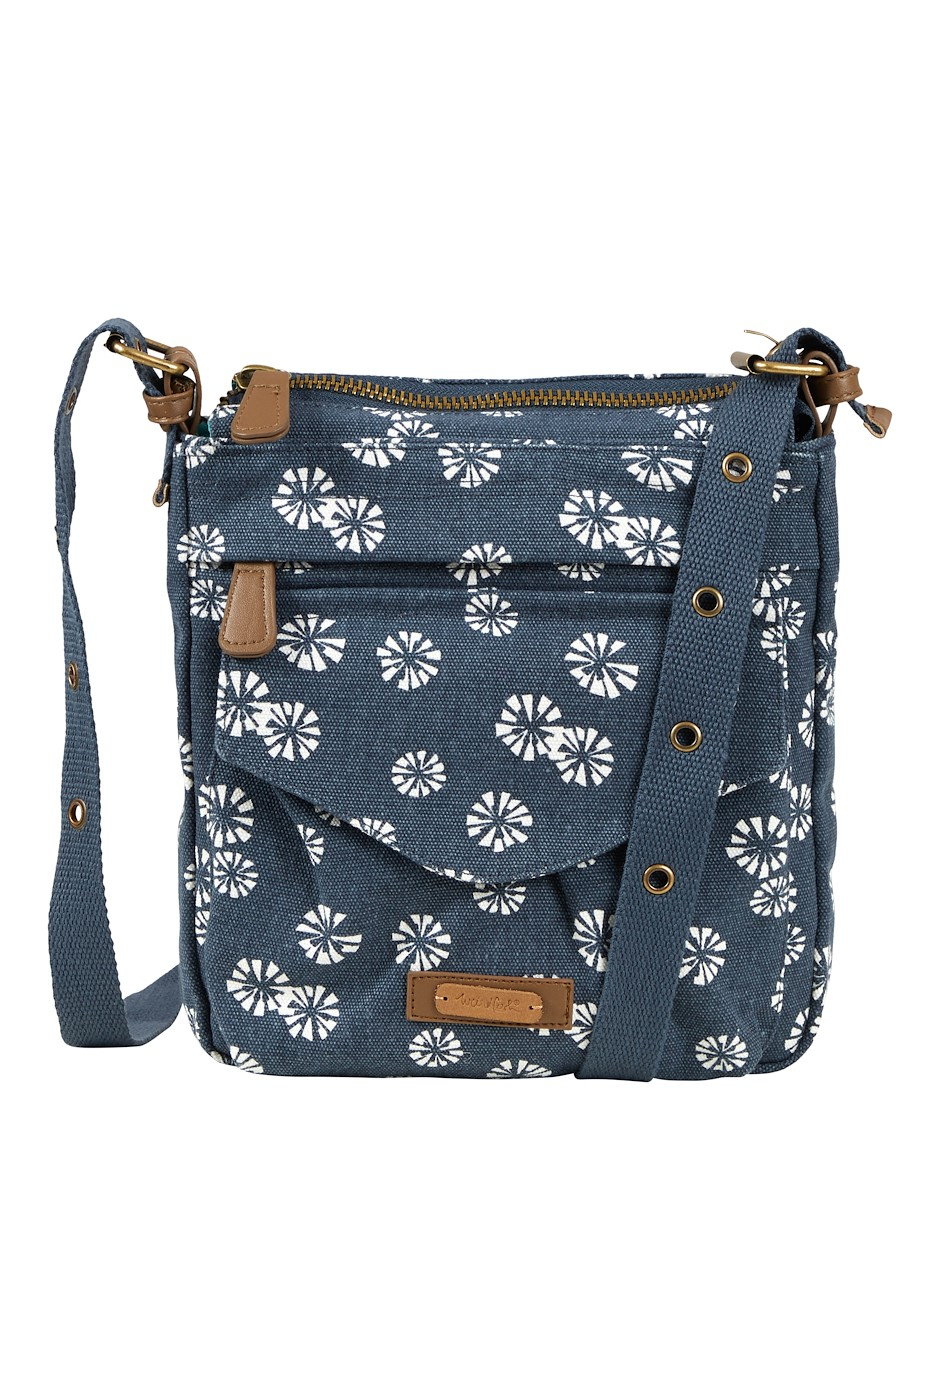 Dibley Printed Canvas Cross Body Bag Navy